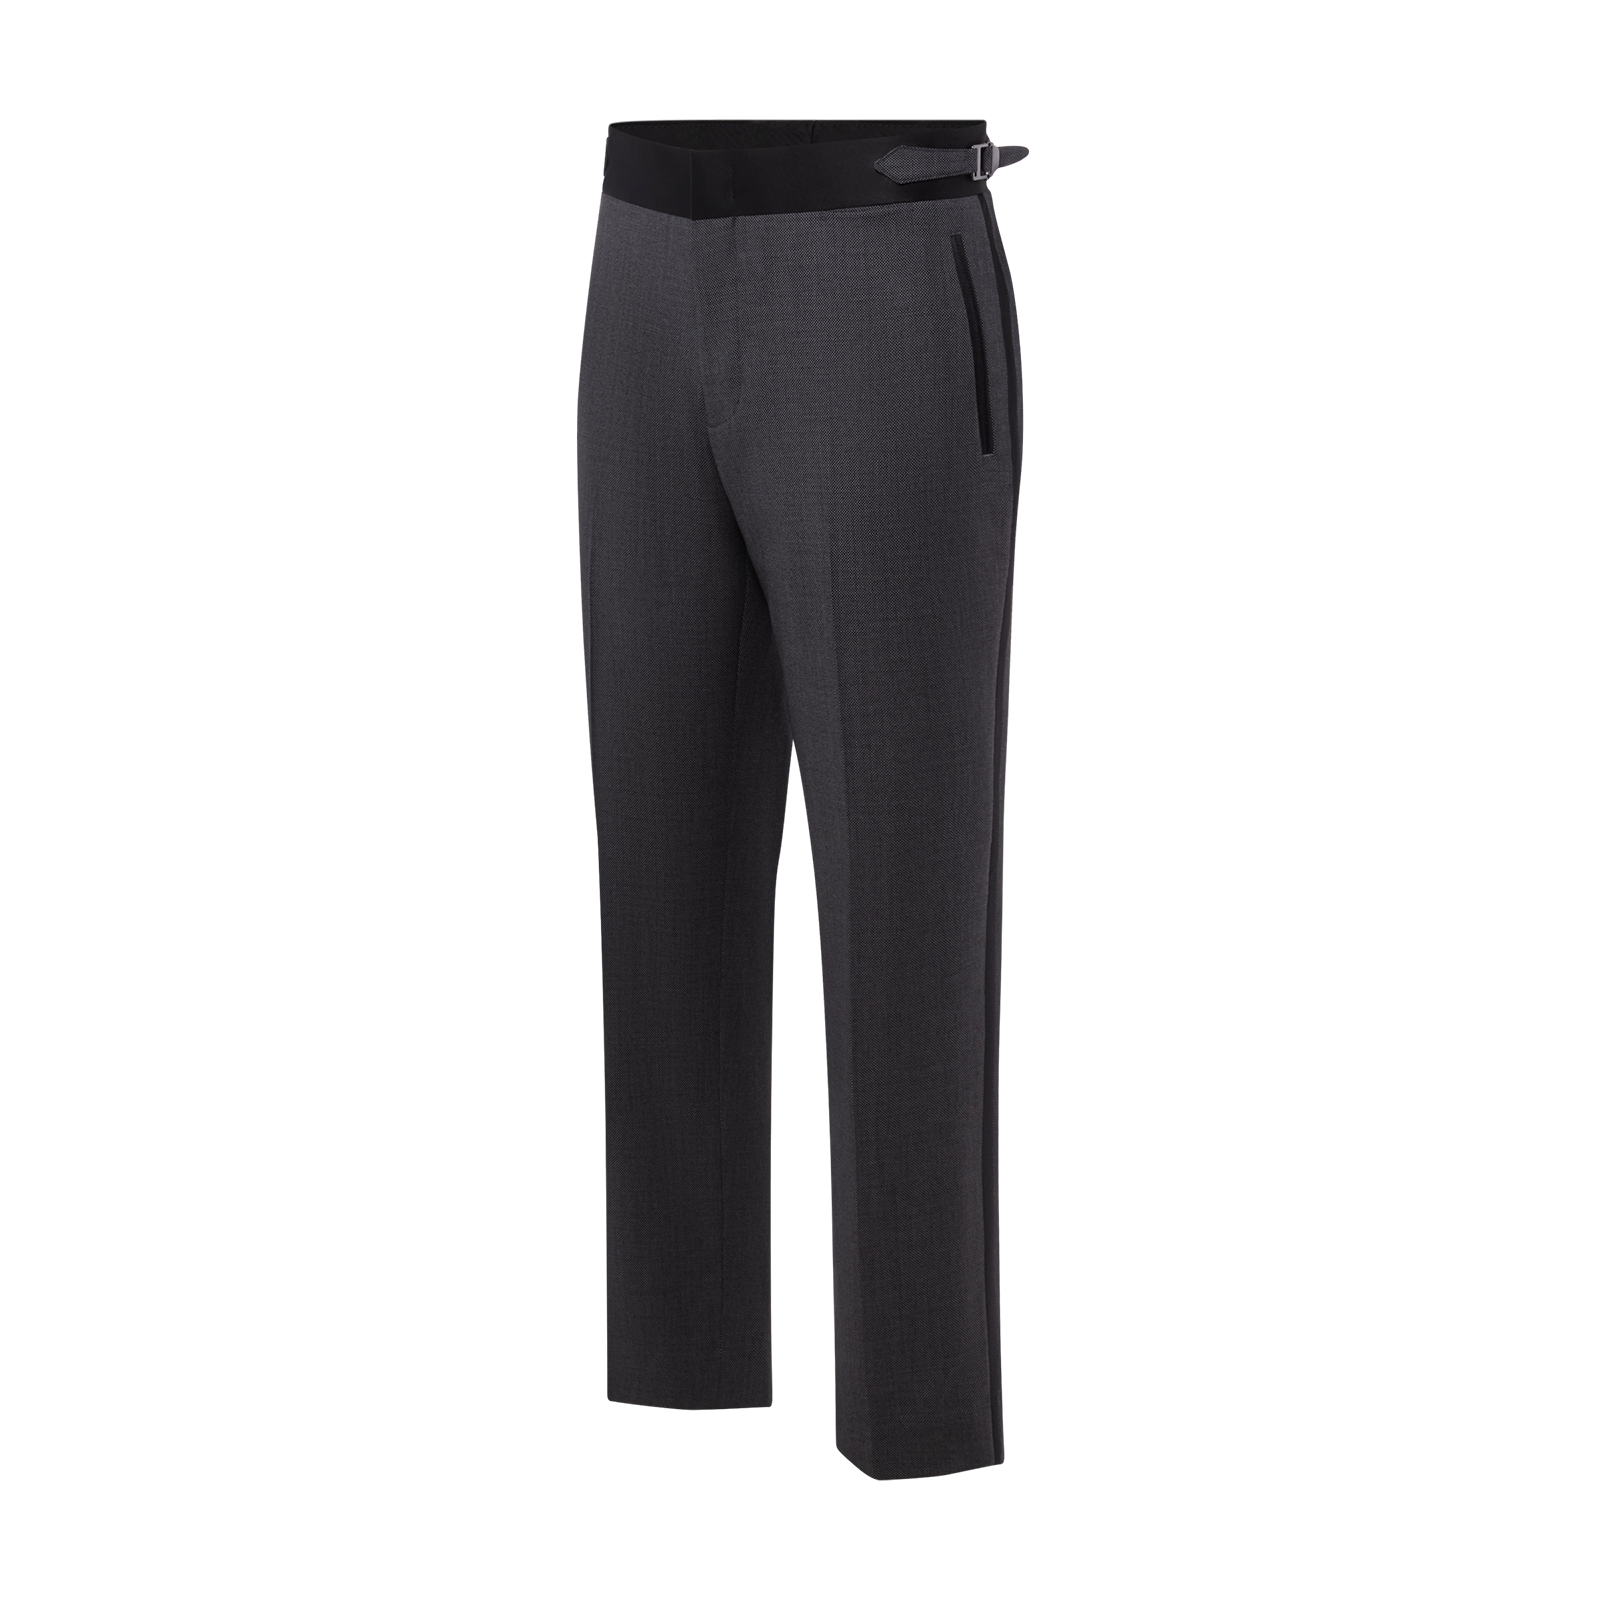 Ghost mannequin pants product picture